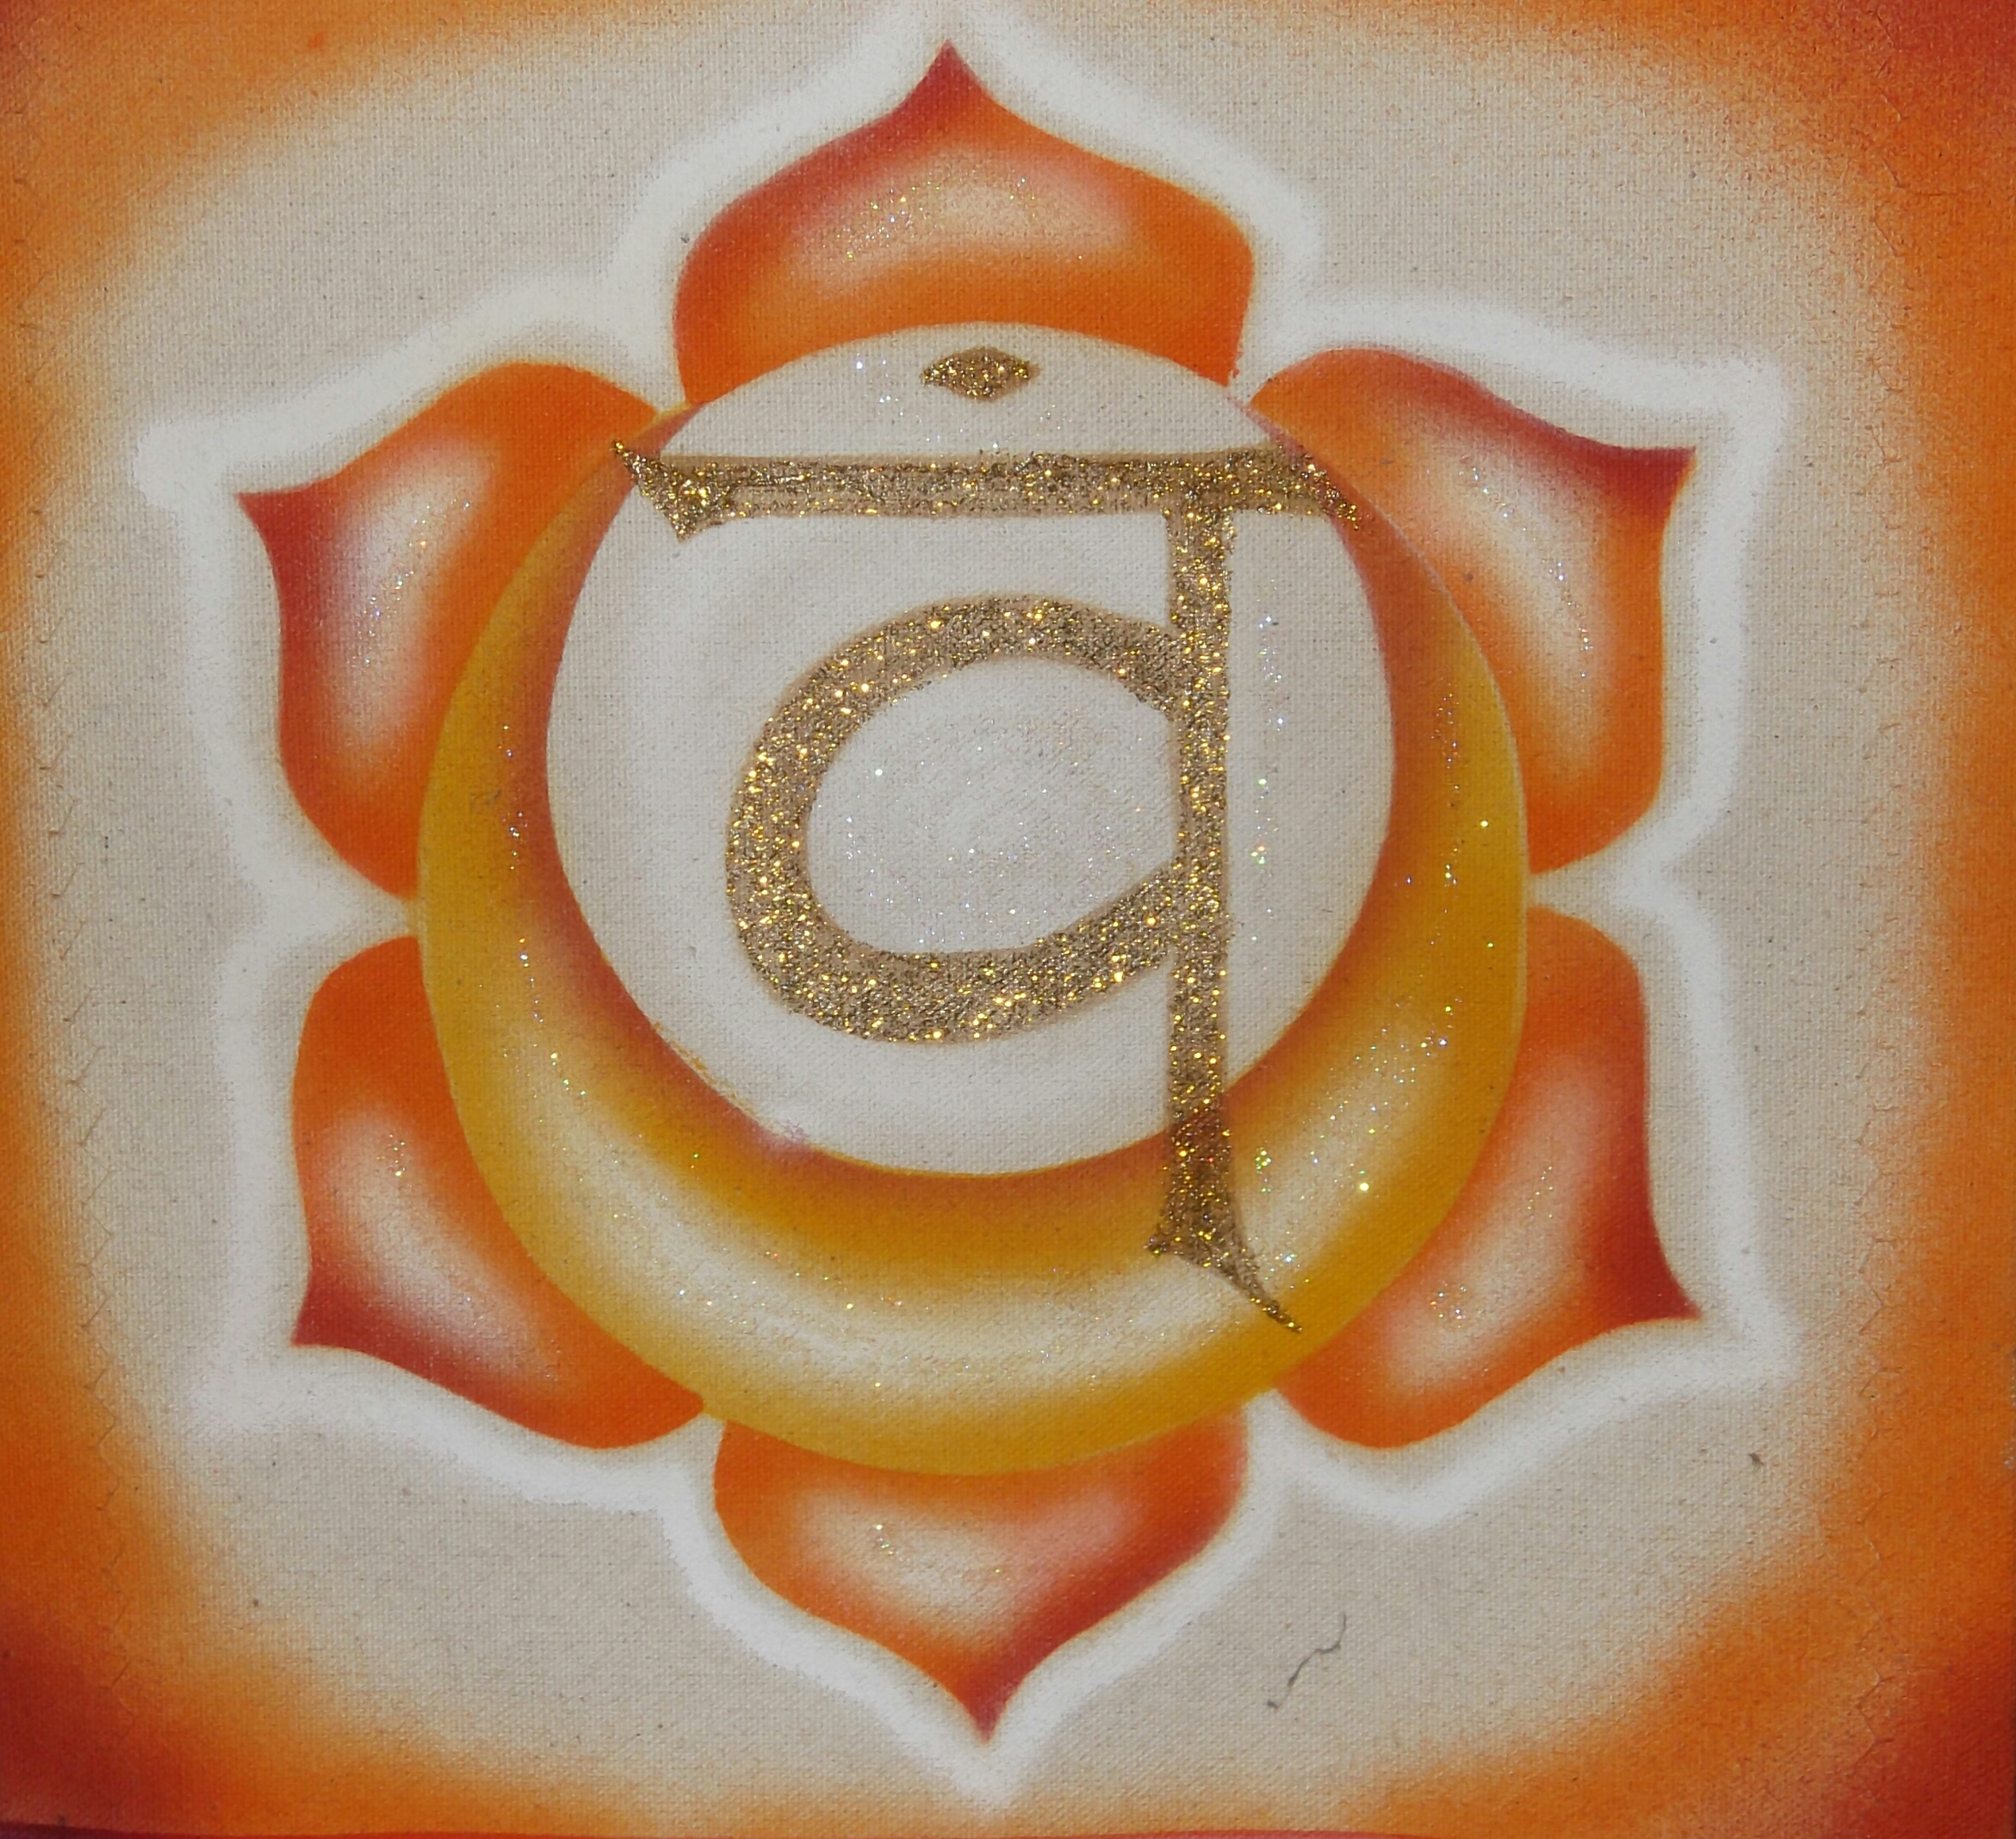 Gain Insights About Relationships Through Your Sacral Chakra